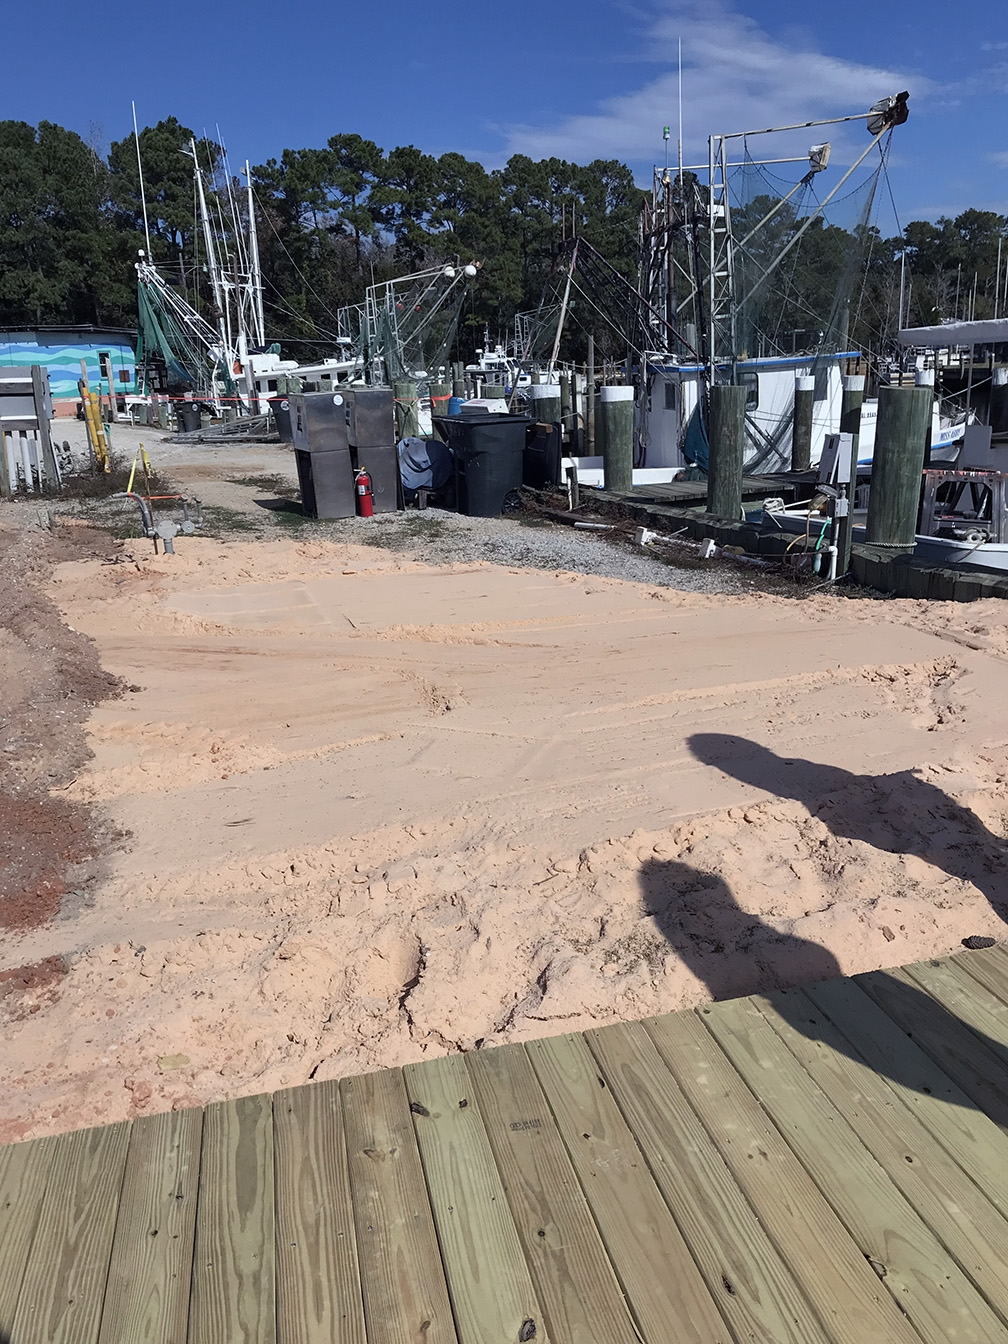 The Fairhope, Alabama, marina, known as Fairhope Docks is undergoing efforts to make the marina more resilient.